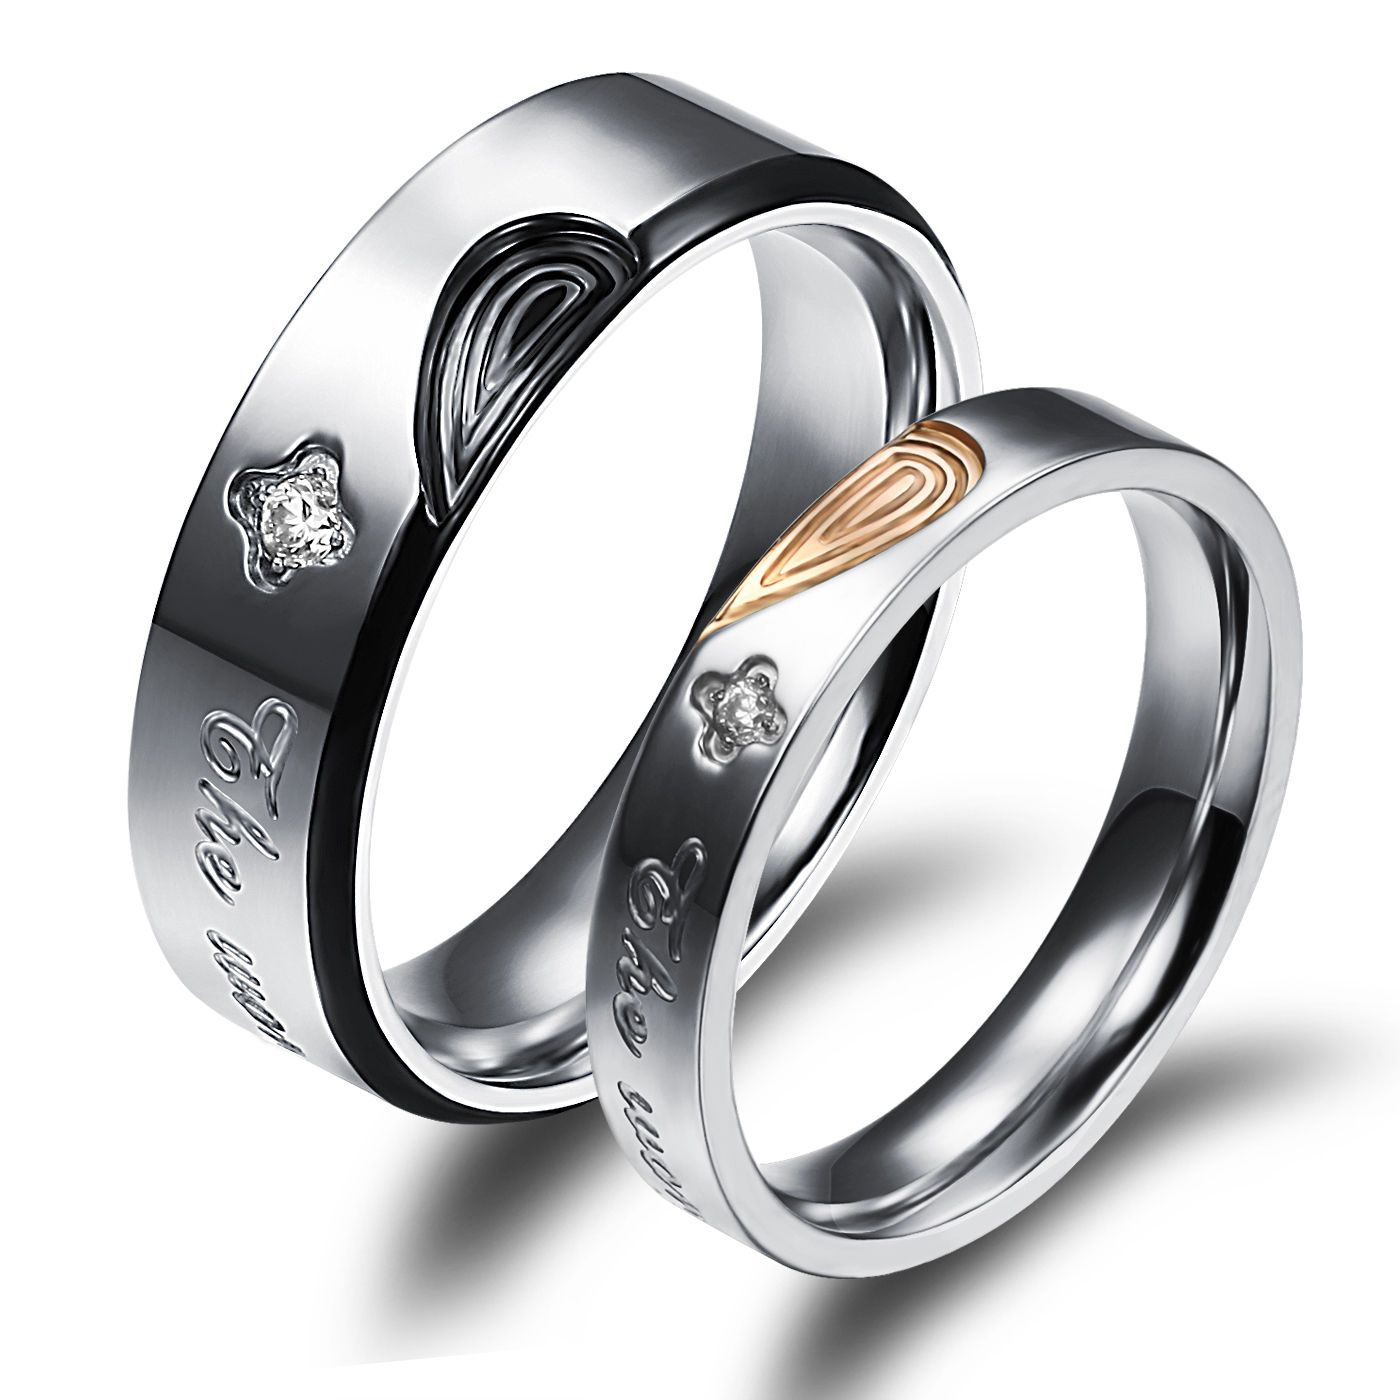 sterling inside pin rings with ring finger wrapped the narrow fingerprint on print wedding silver